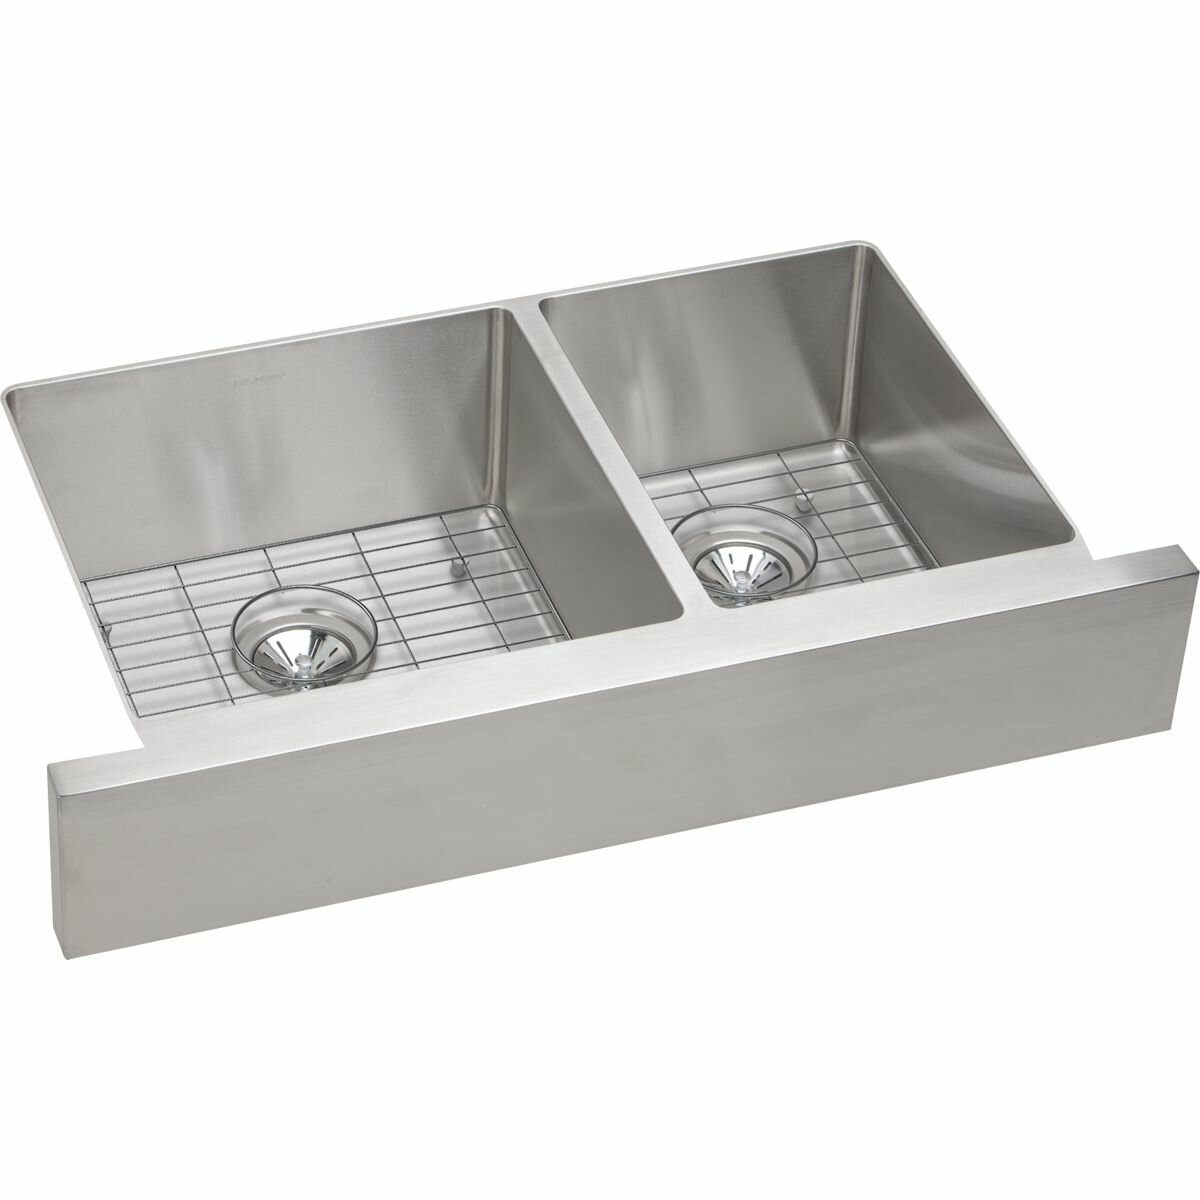 Double Bowl Apron Front Sink : Elkay Crosstown Double Bowl Apron Front Undermount Kitchen Sink ...